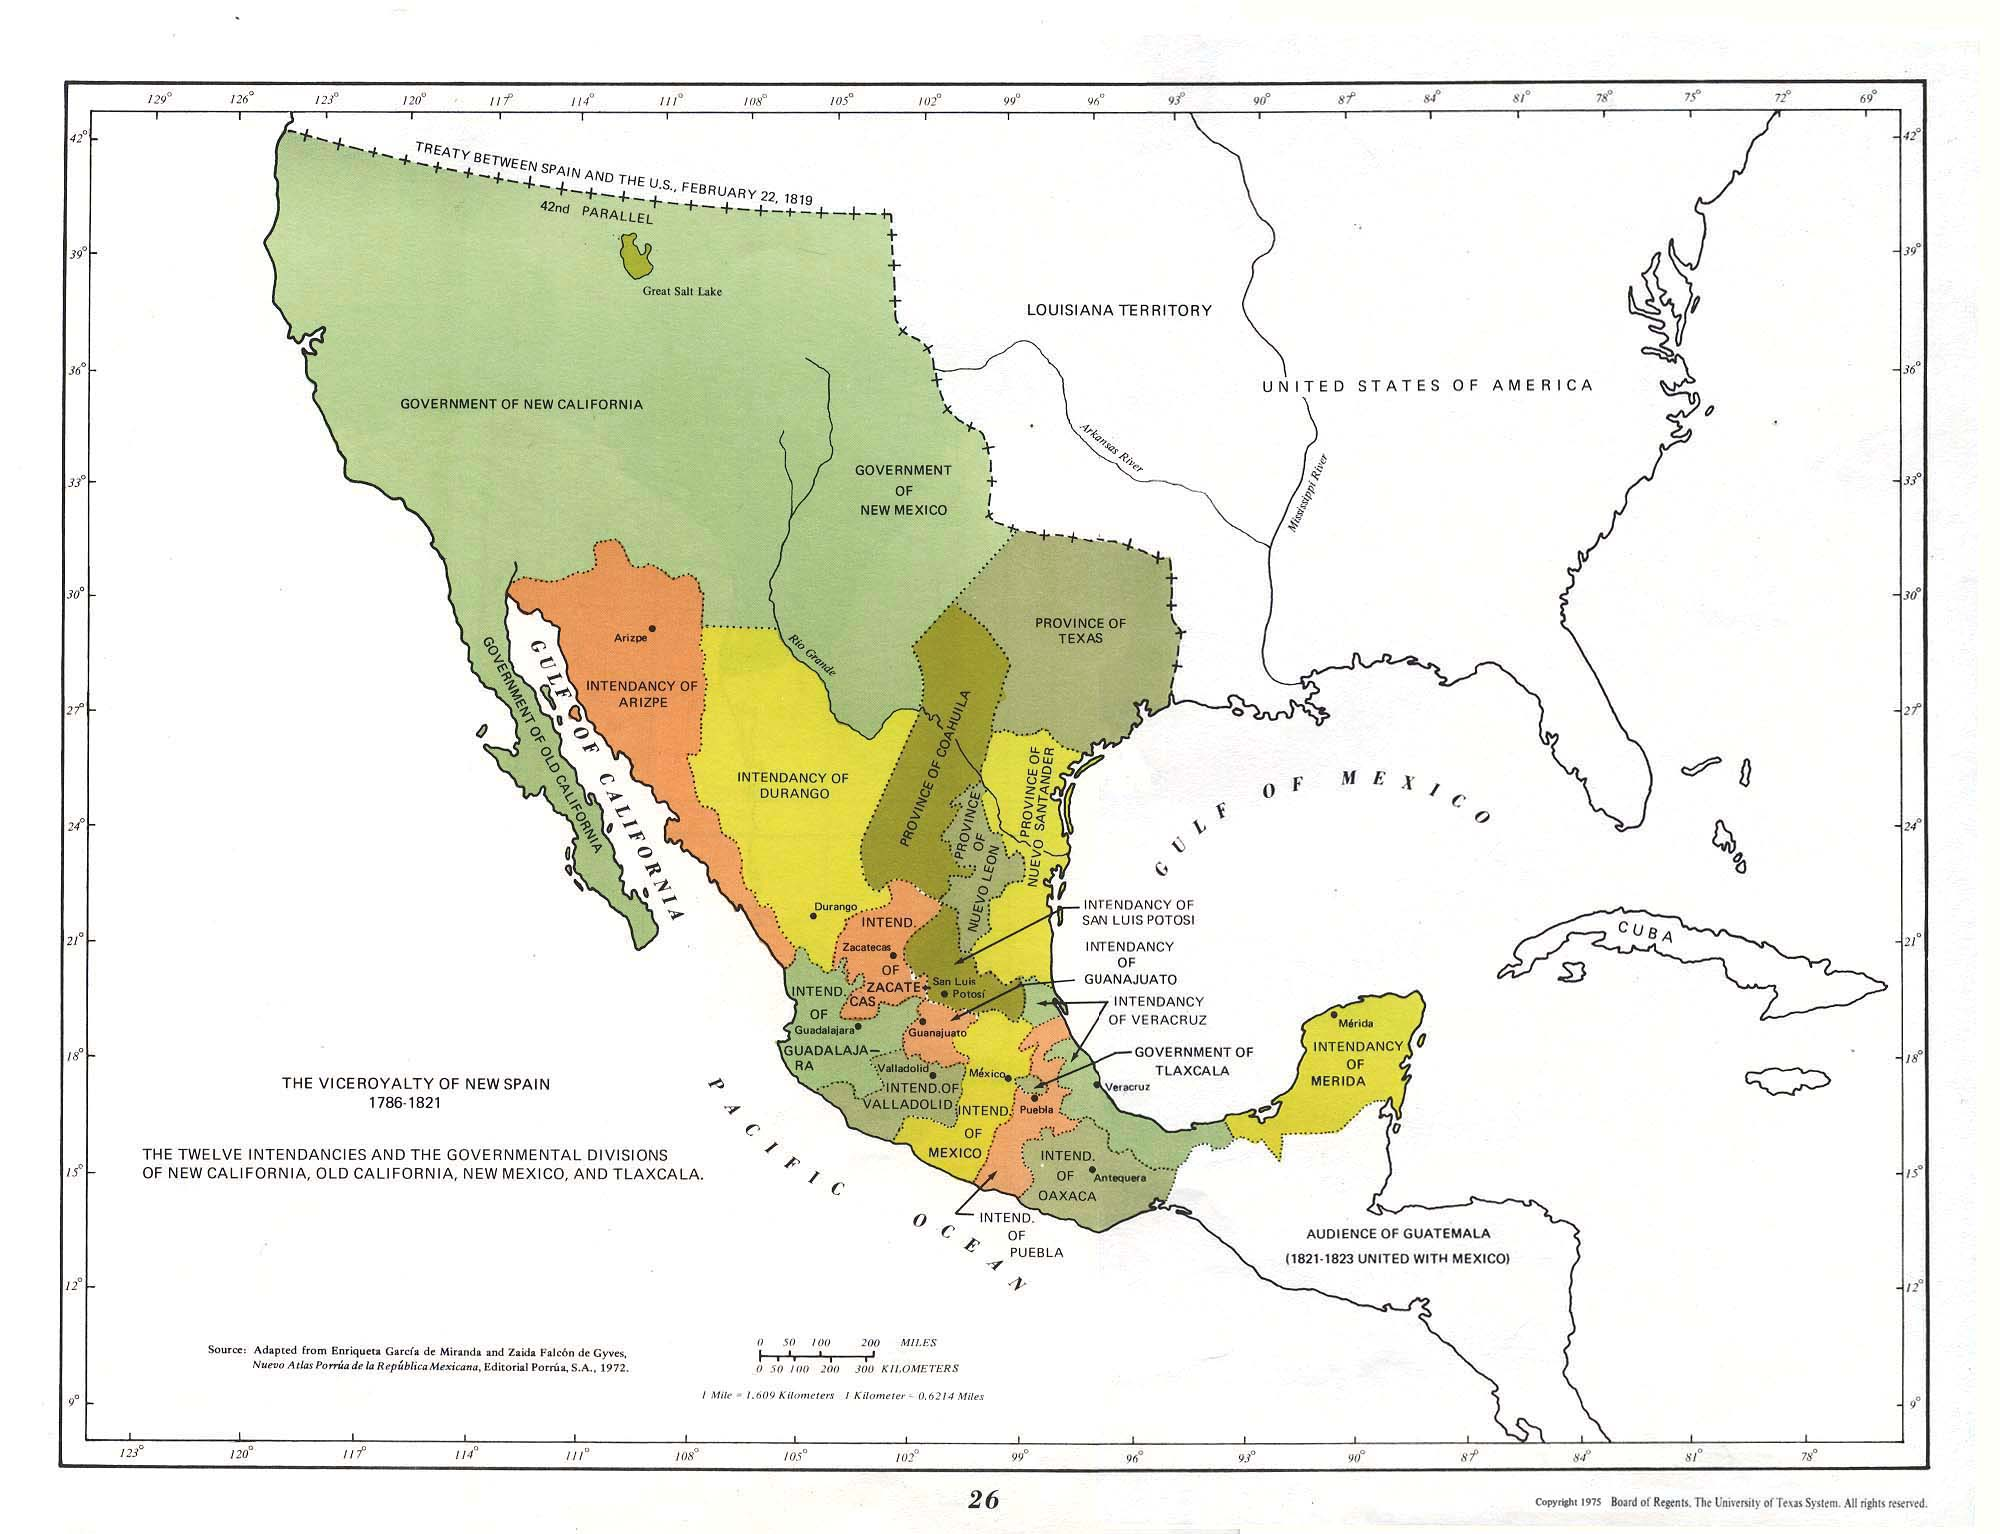 the viceroyalty of new spain 1786 1821